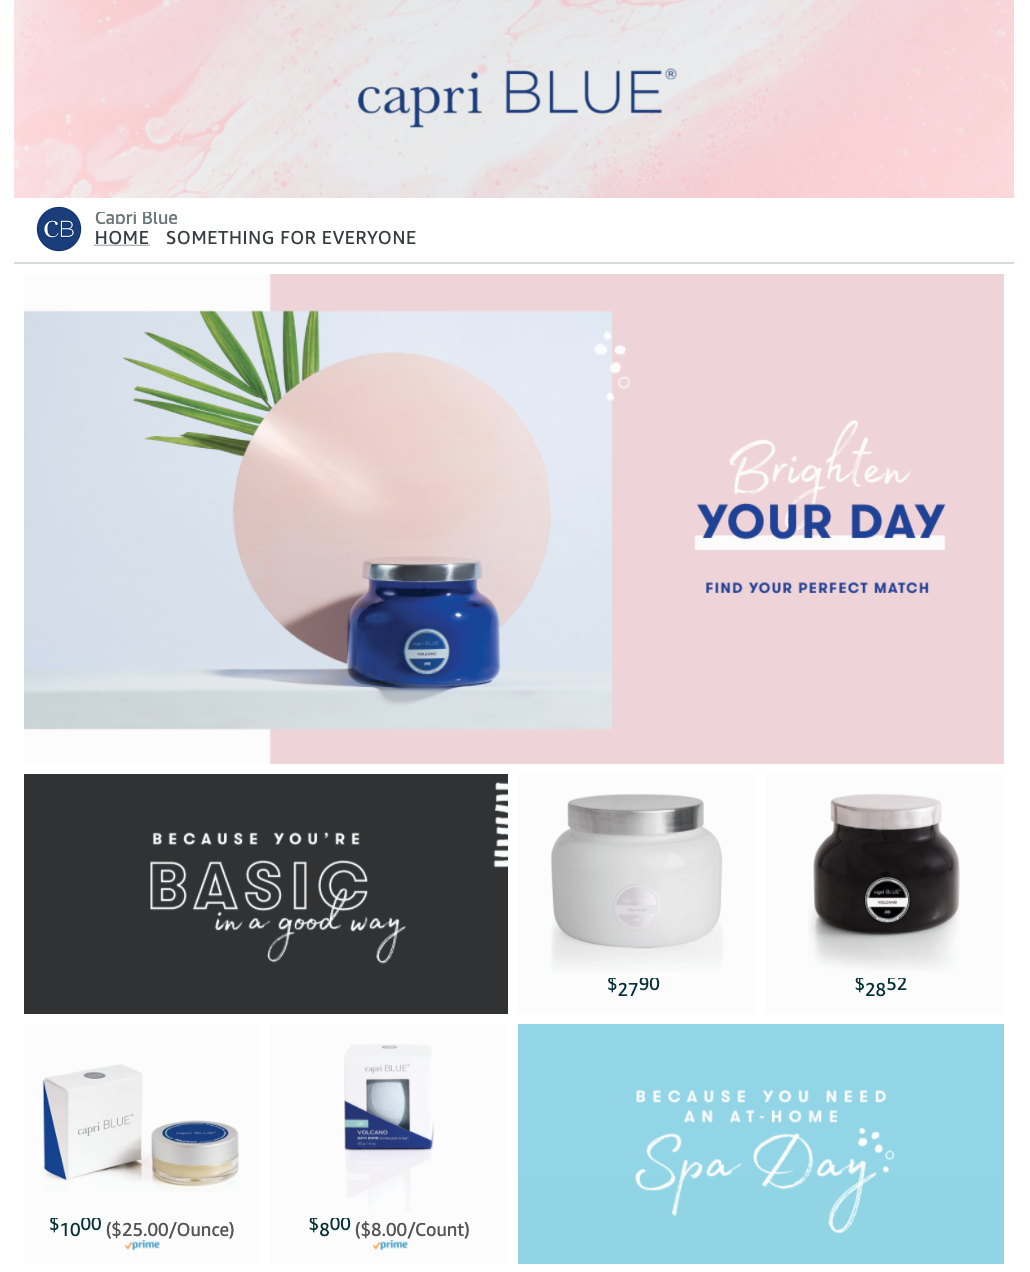 Capri Blue Amazon Storefront example | Pattern Creative Services